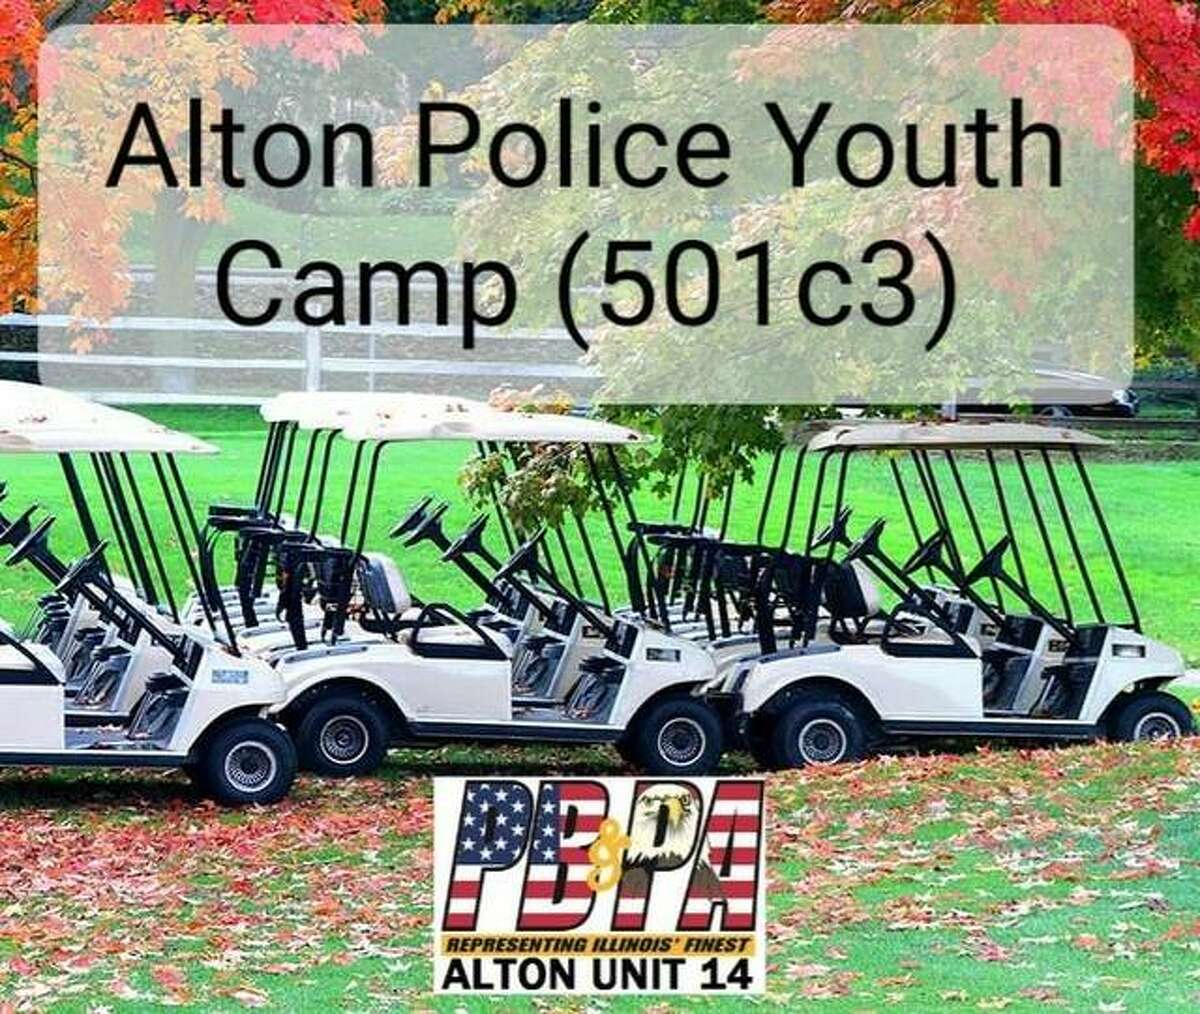 On Friday at noon, join the 2021 Illinois Police Benevolent and Protective Association Alton Unit 14 Golf Tournament at the Woodlands Golf Club and Banquet Facility, 2839 Harris Lane, Alton. Since 1936, the Alton Unit 14 annually hosts a fundraiser, which in years past has been the Policeman's Ball. The Ball gave community leaders, businesses and the public an opportunity to show their support and appreciation to the men and women of the Alton Police Department. Due to COVID-19 restrictions in 2020, the association unit was unable to host the ball or any fundraisers. So this year the golf tournament is on! Get tickets at www.golfaltonpbpa.com.